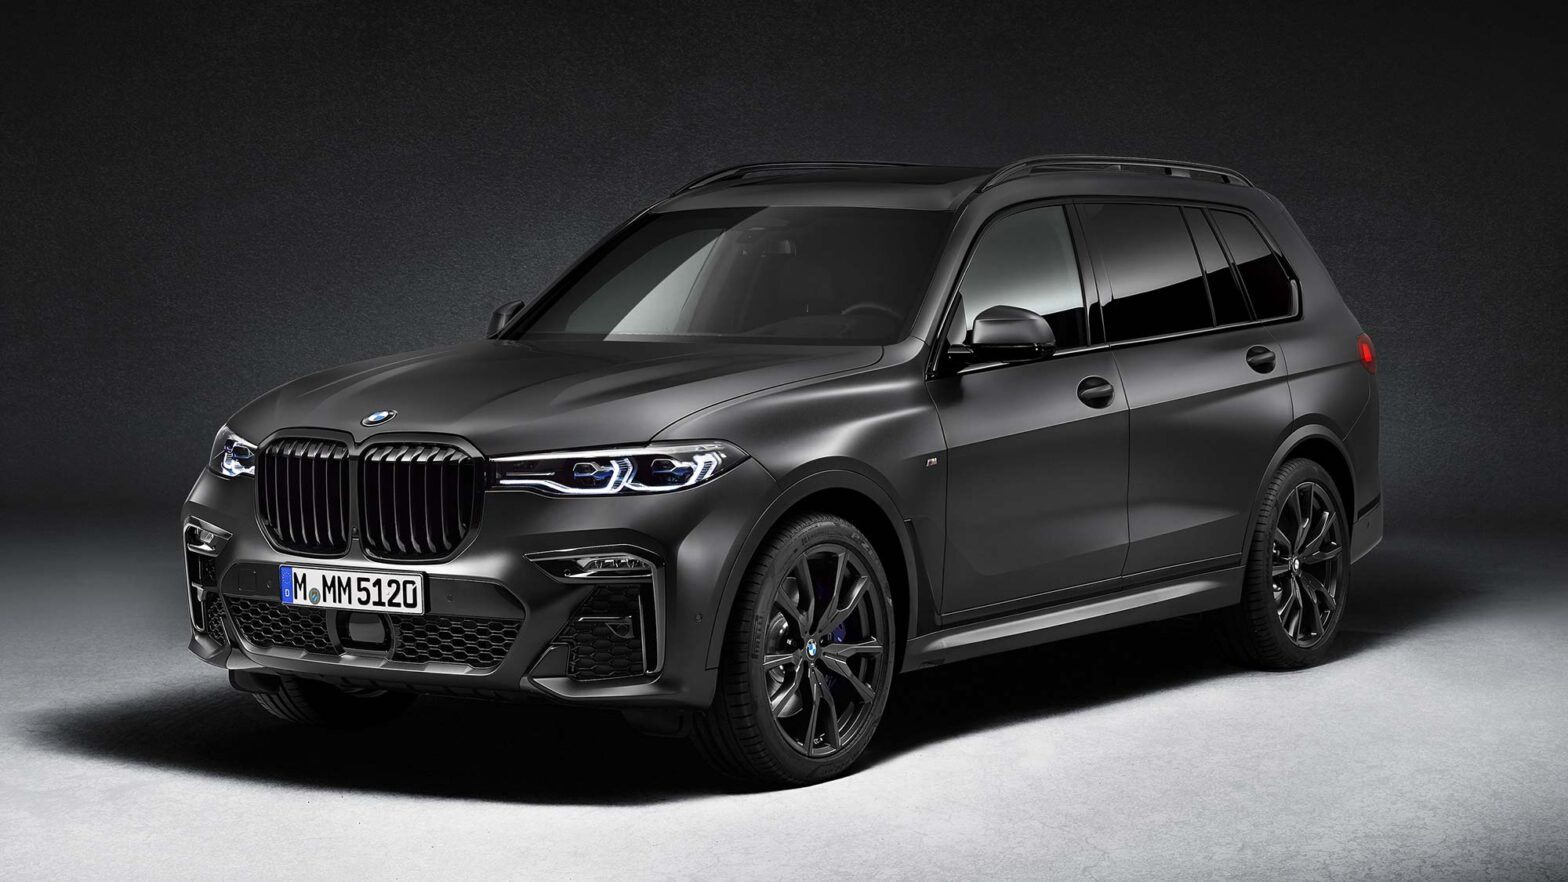 BMW X7 Dark Shadow Edition SUV